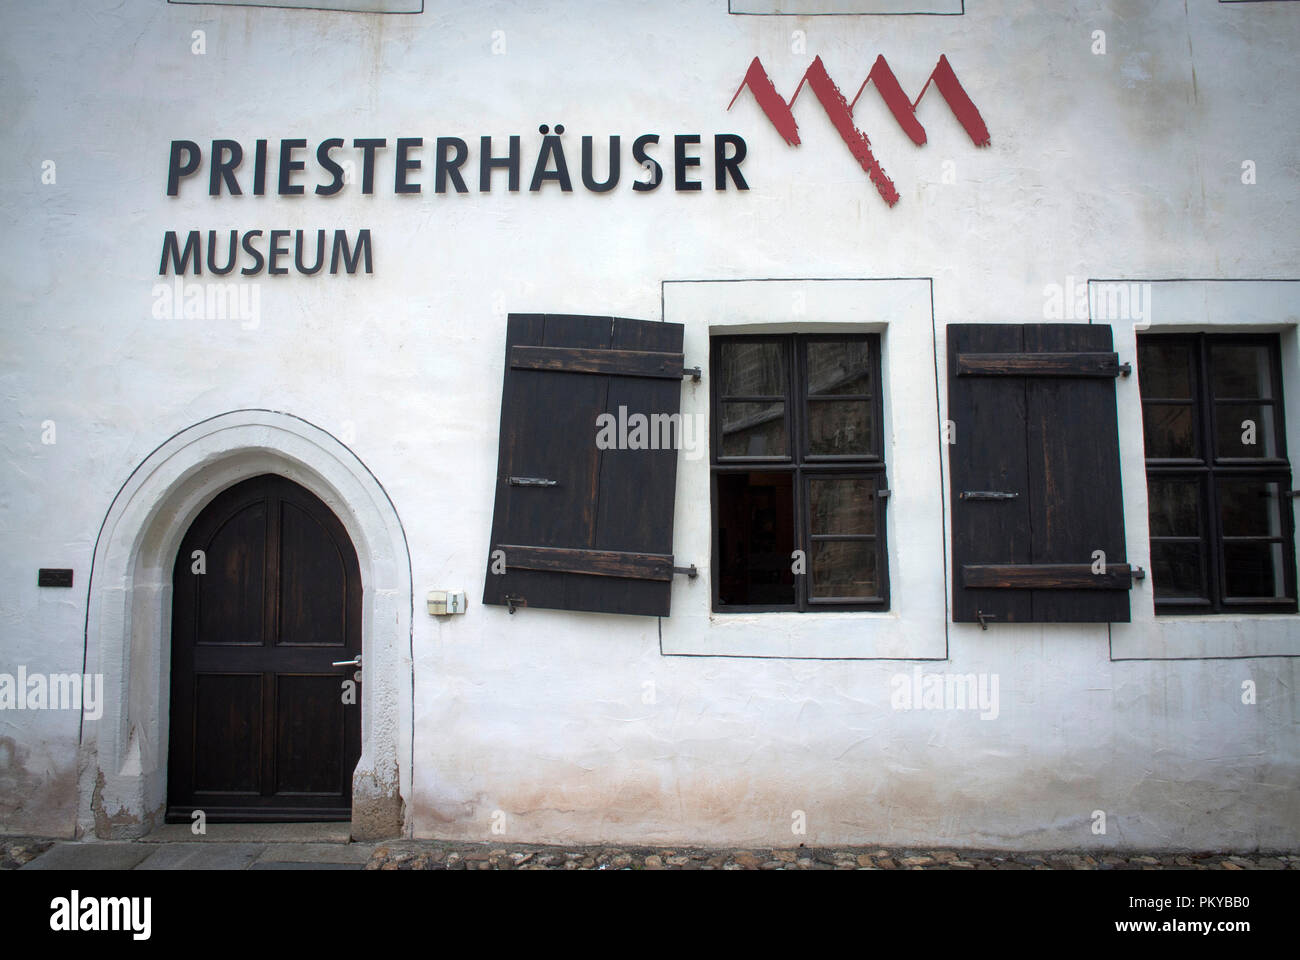 The Priesterhauser Museum in Zwickau, Saxony, Germany - Stock Image